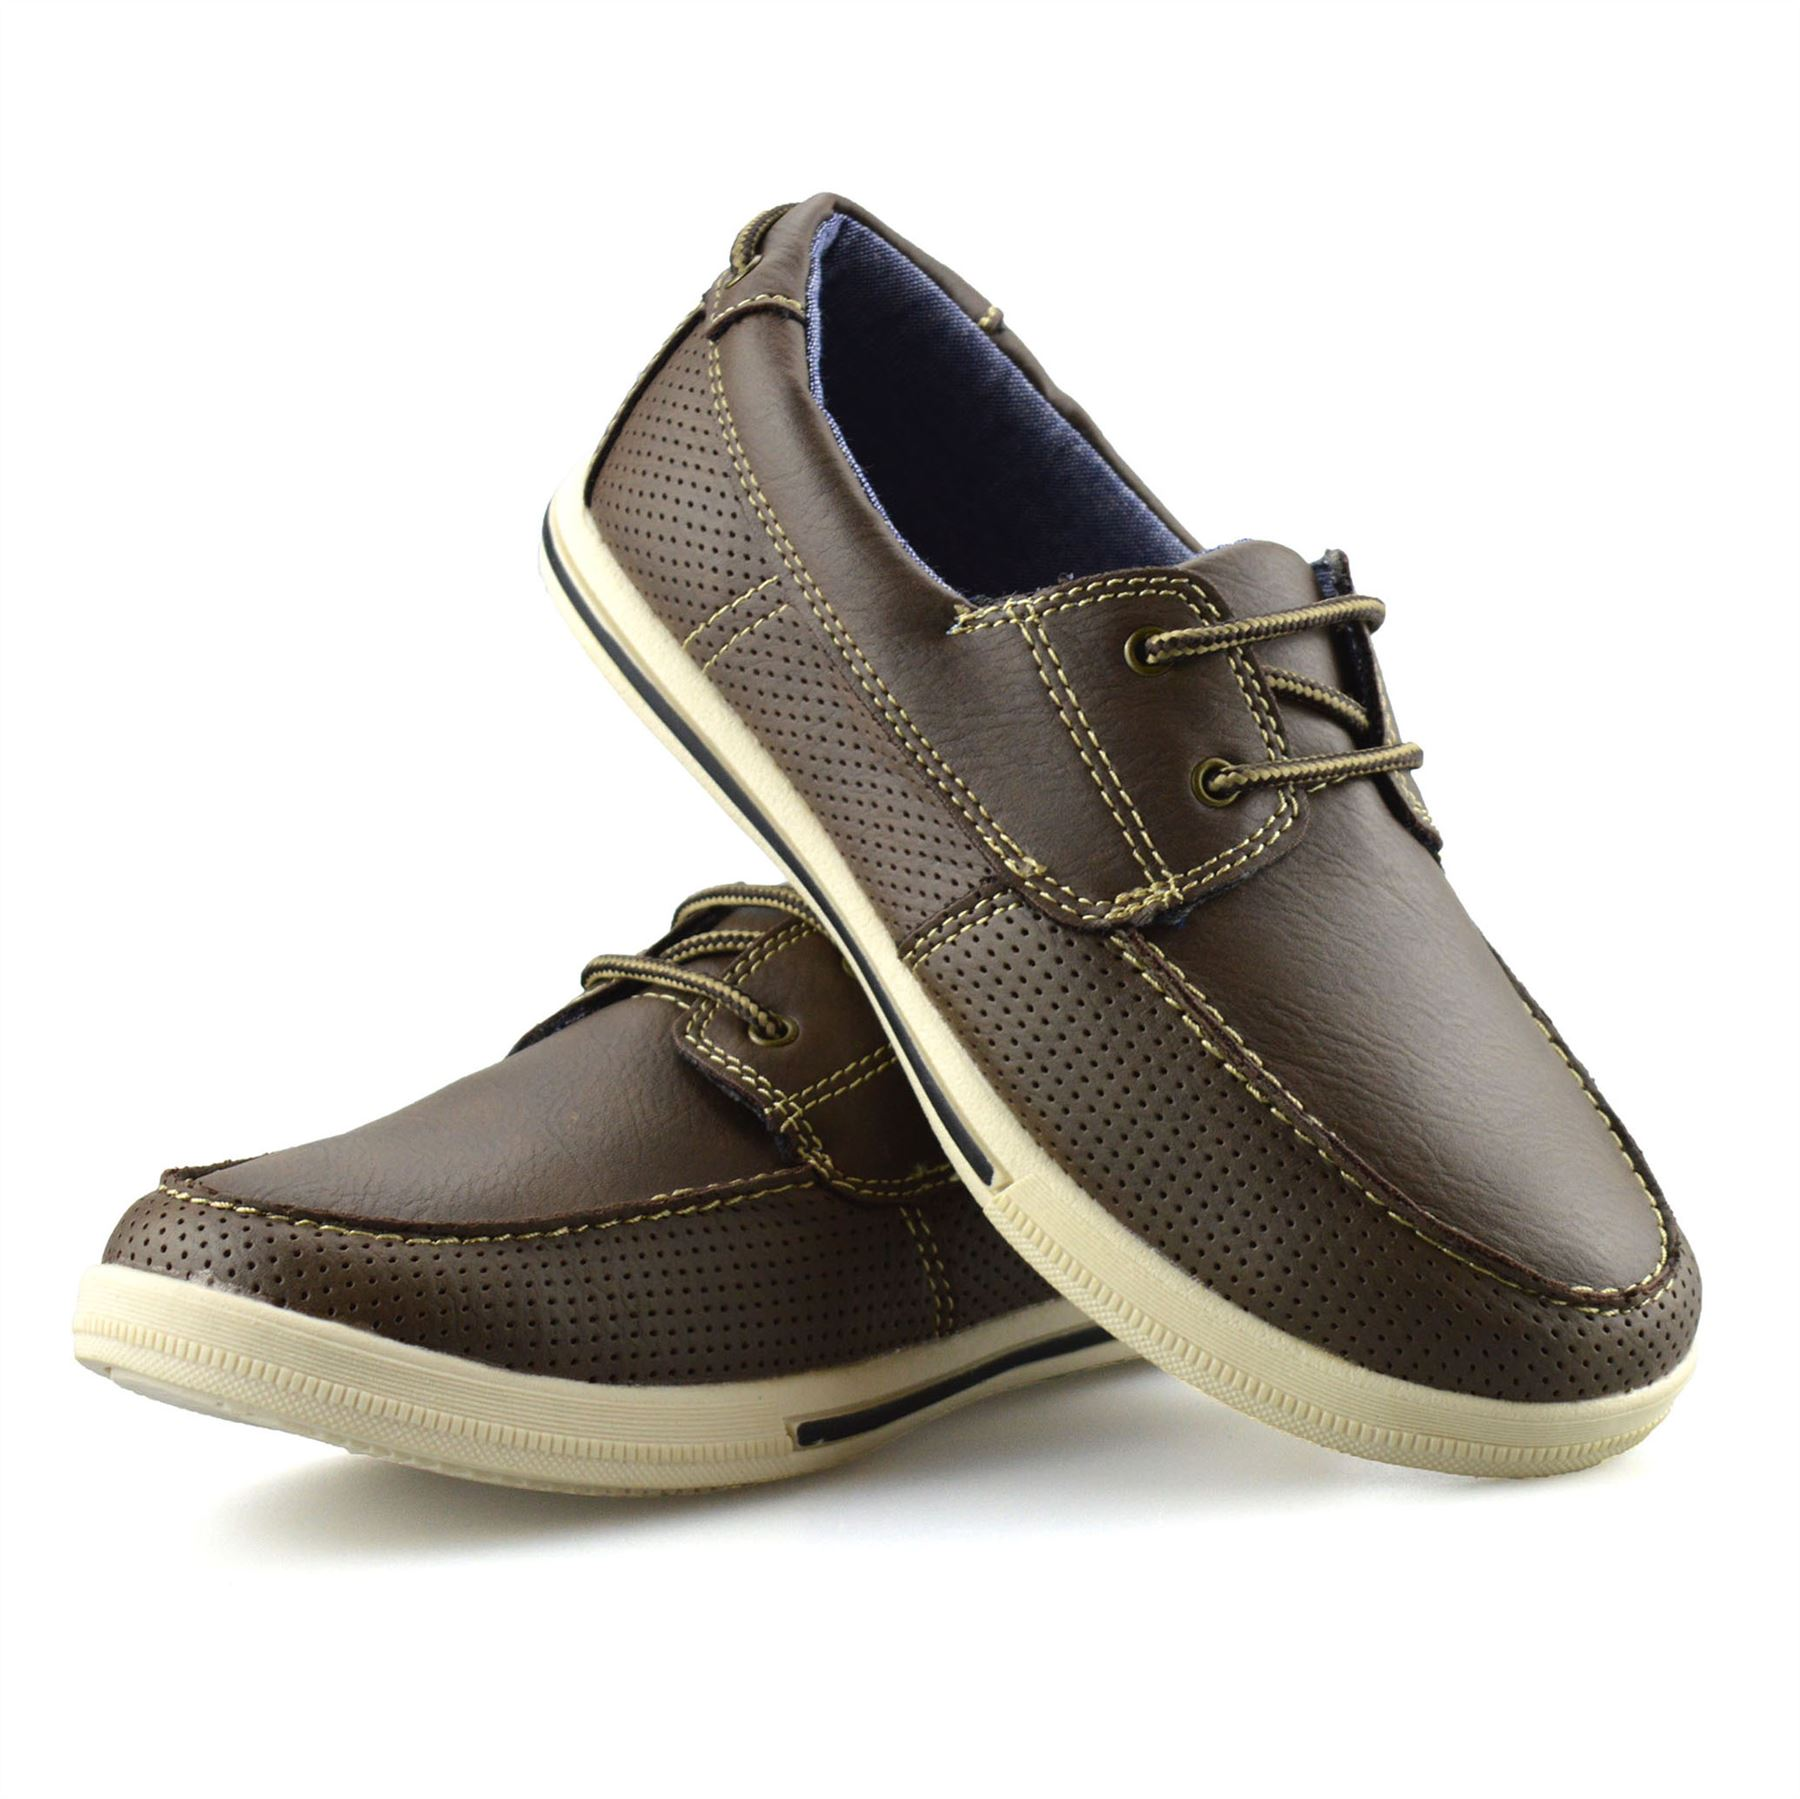 Boys-Kids-Casual-Summer-Lace-Up-Smart-Walking-School-Trainers-Boat-Shoes-Size thumbnail 12